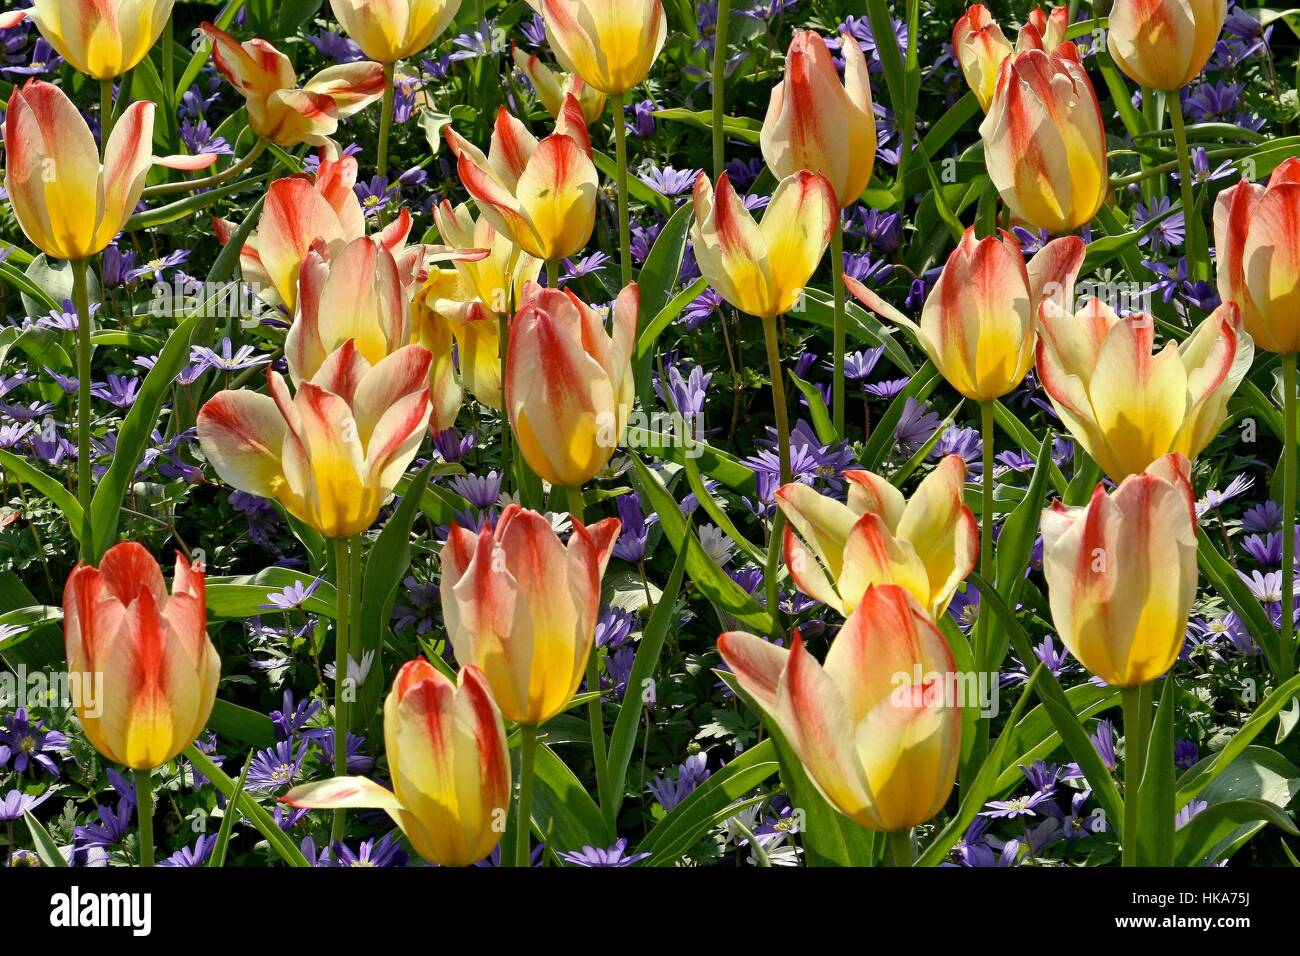 Addis - Greigii Tulip, Apricot edged sulphur - light yellow, Park Keukenhof, Holland - Stock Image